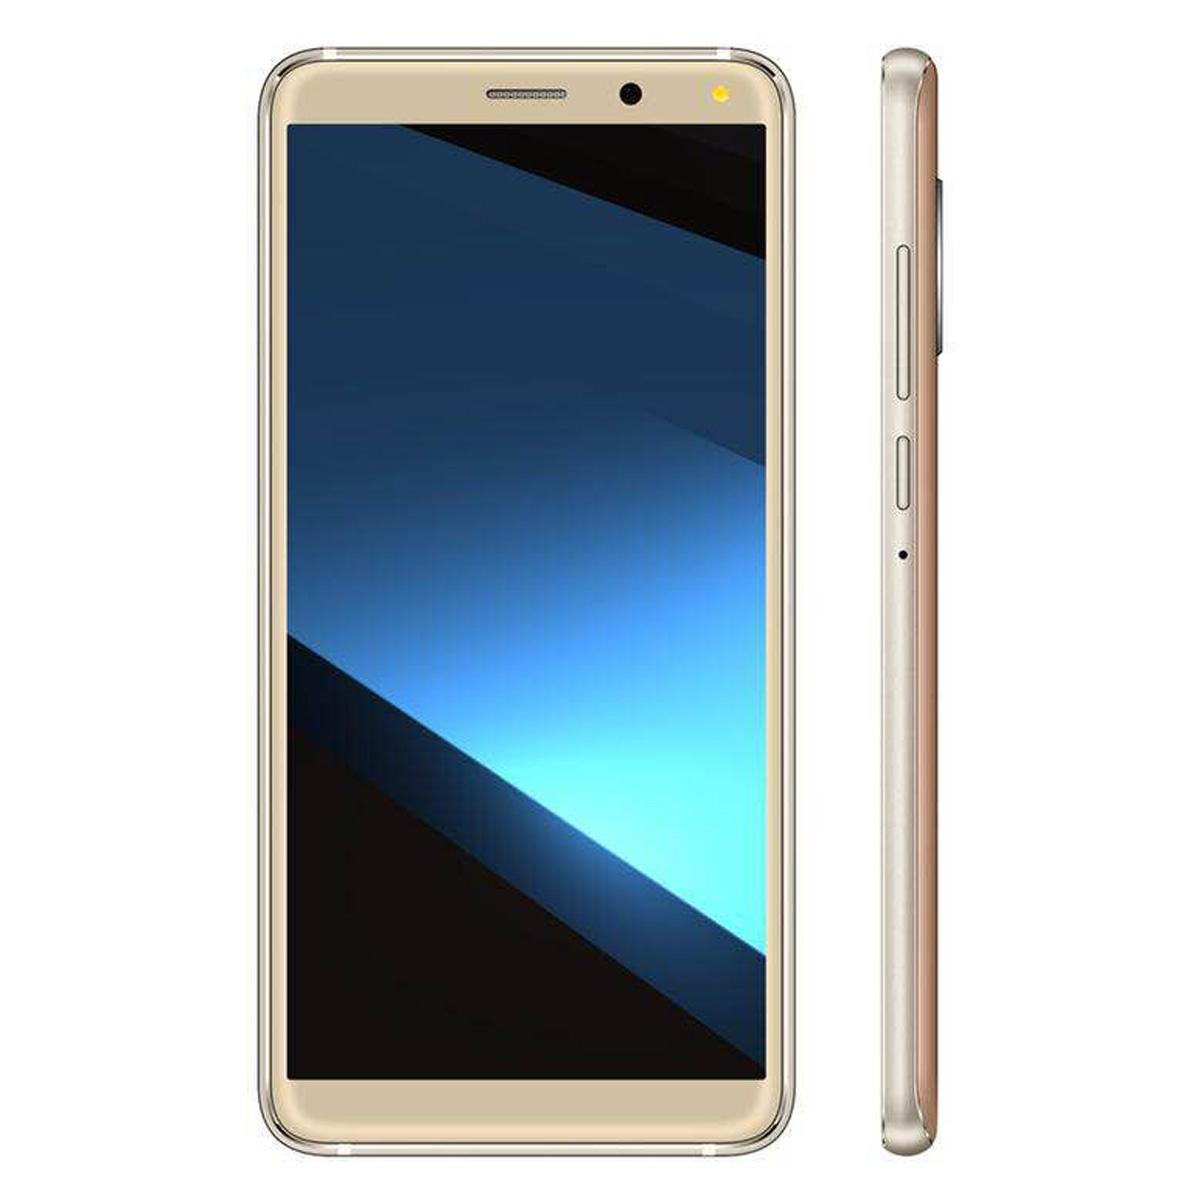 LeTV Le 2 X526 Smart Phone 3GB RAM 32GB ROM 5 5 Inch FHD Screen Android 6 0  4G LTE Smartphone Gold/Pink